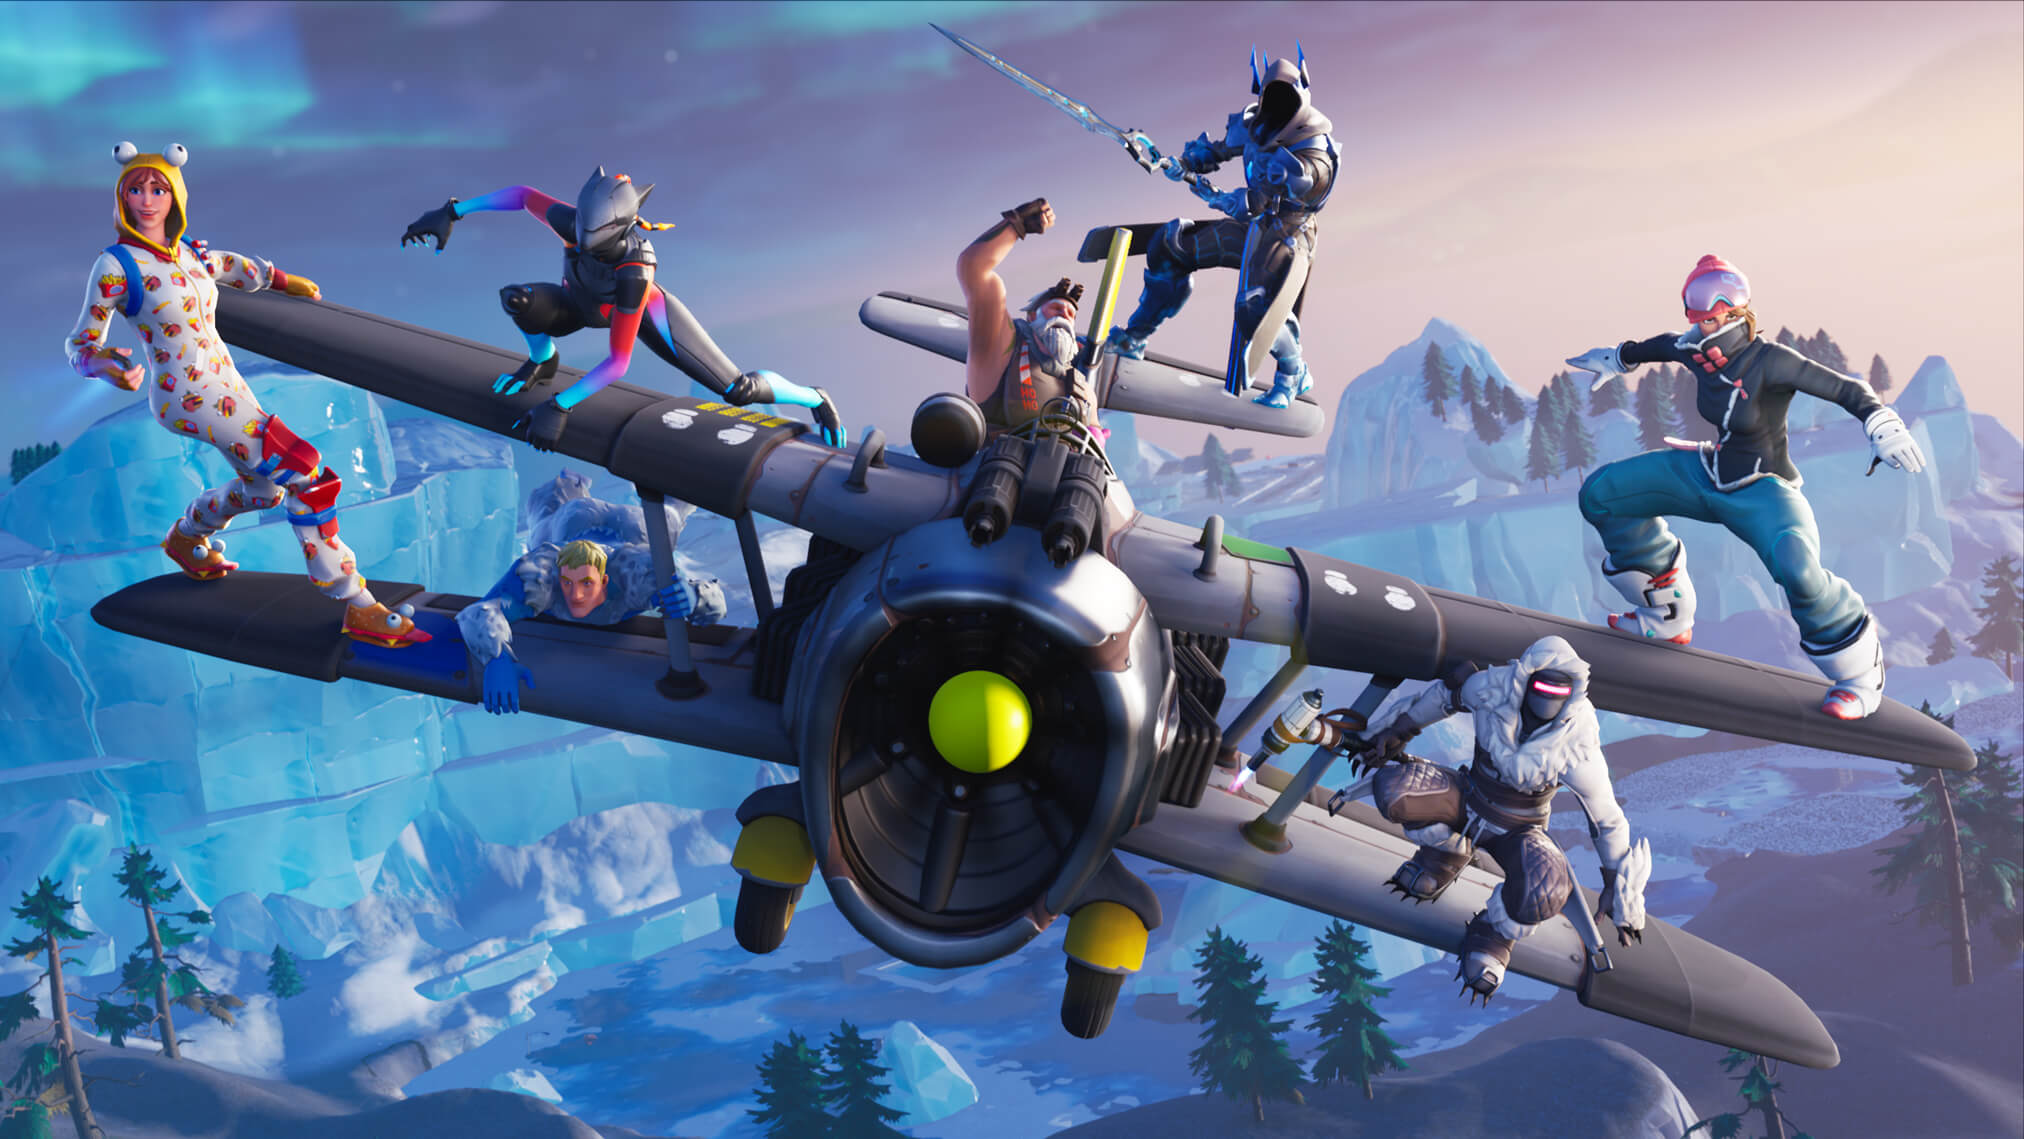 Fortnite Season 7 Ending Date What to Expect from Fortnite Season 8